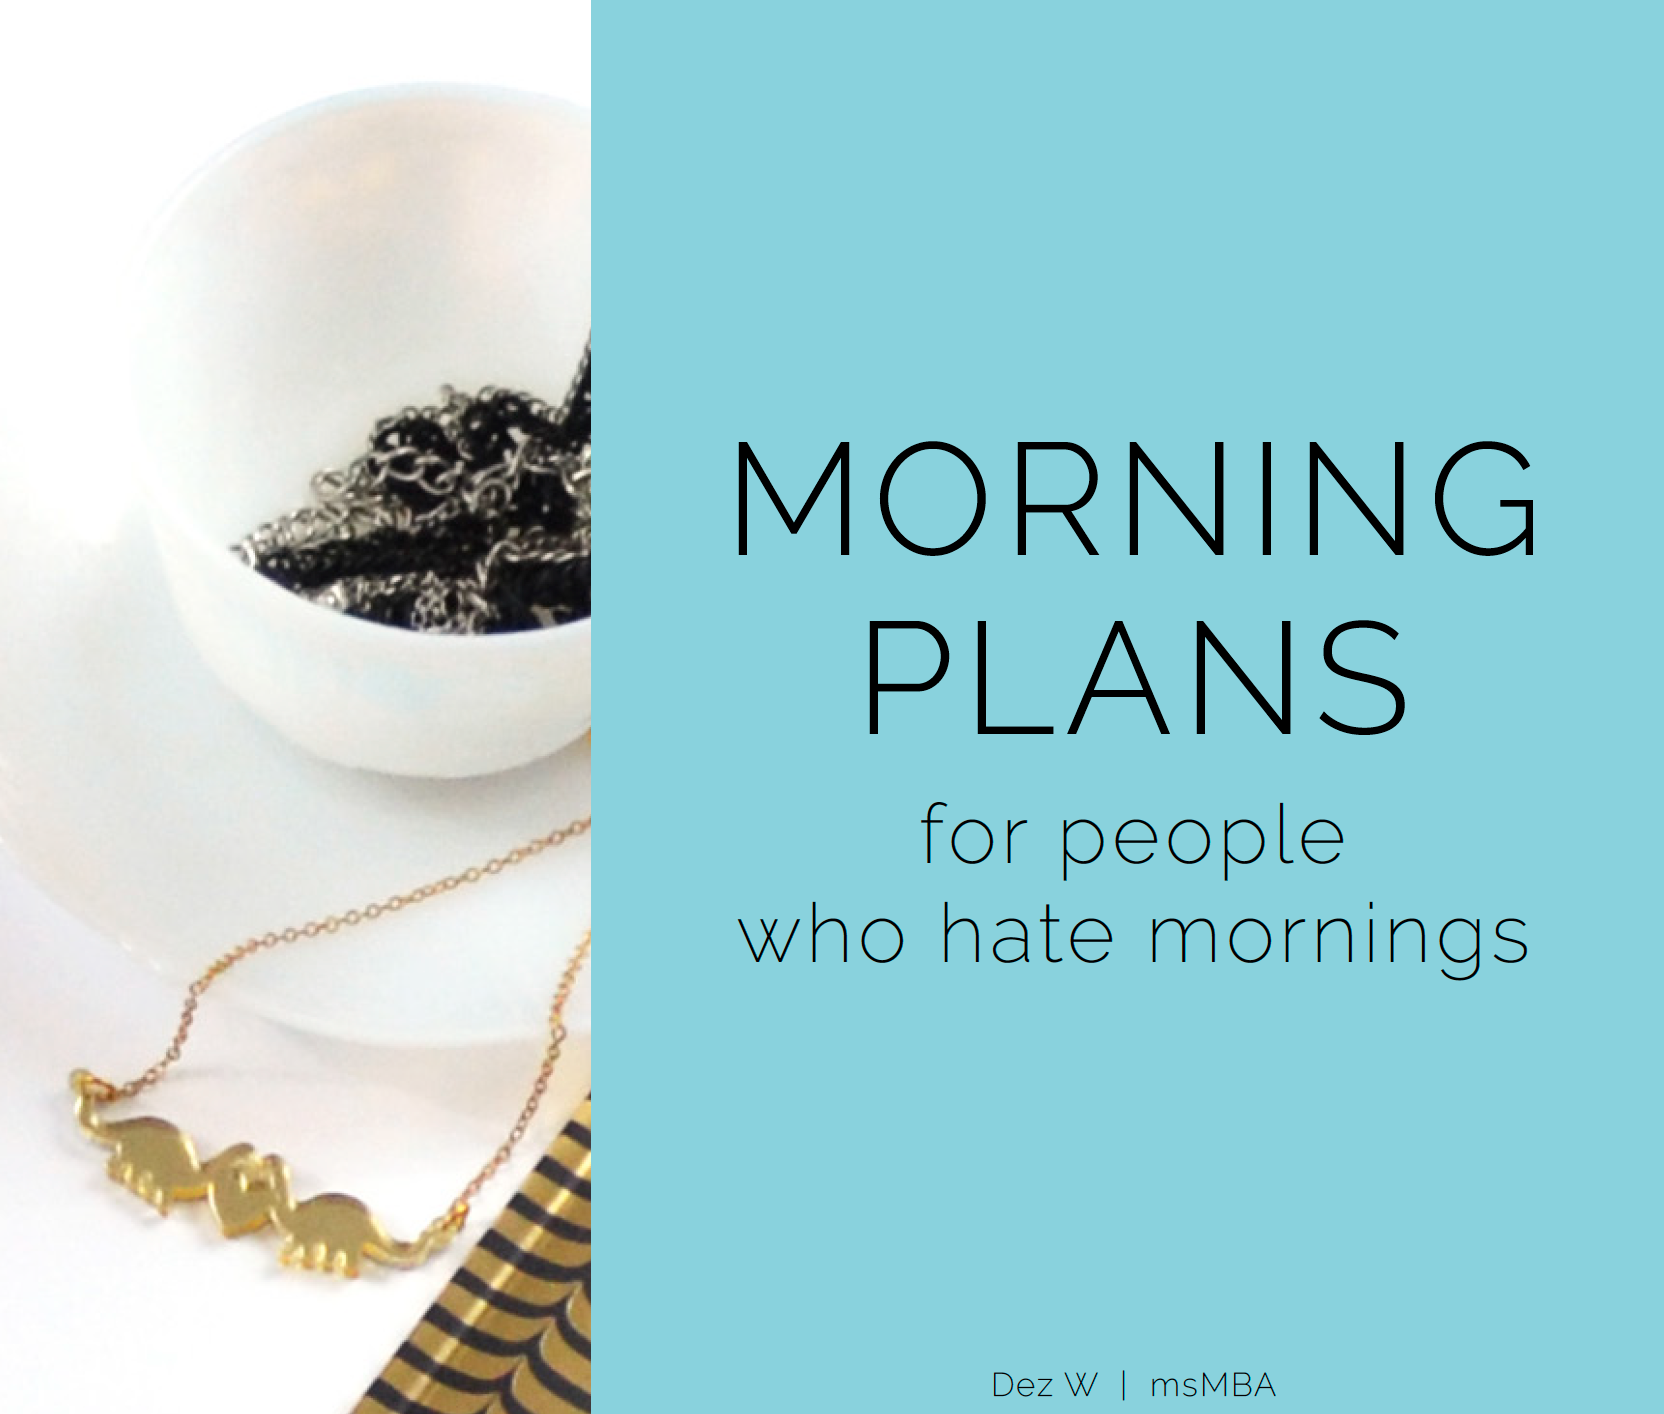 morning-plans-for-people-who-hate-mornings.png